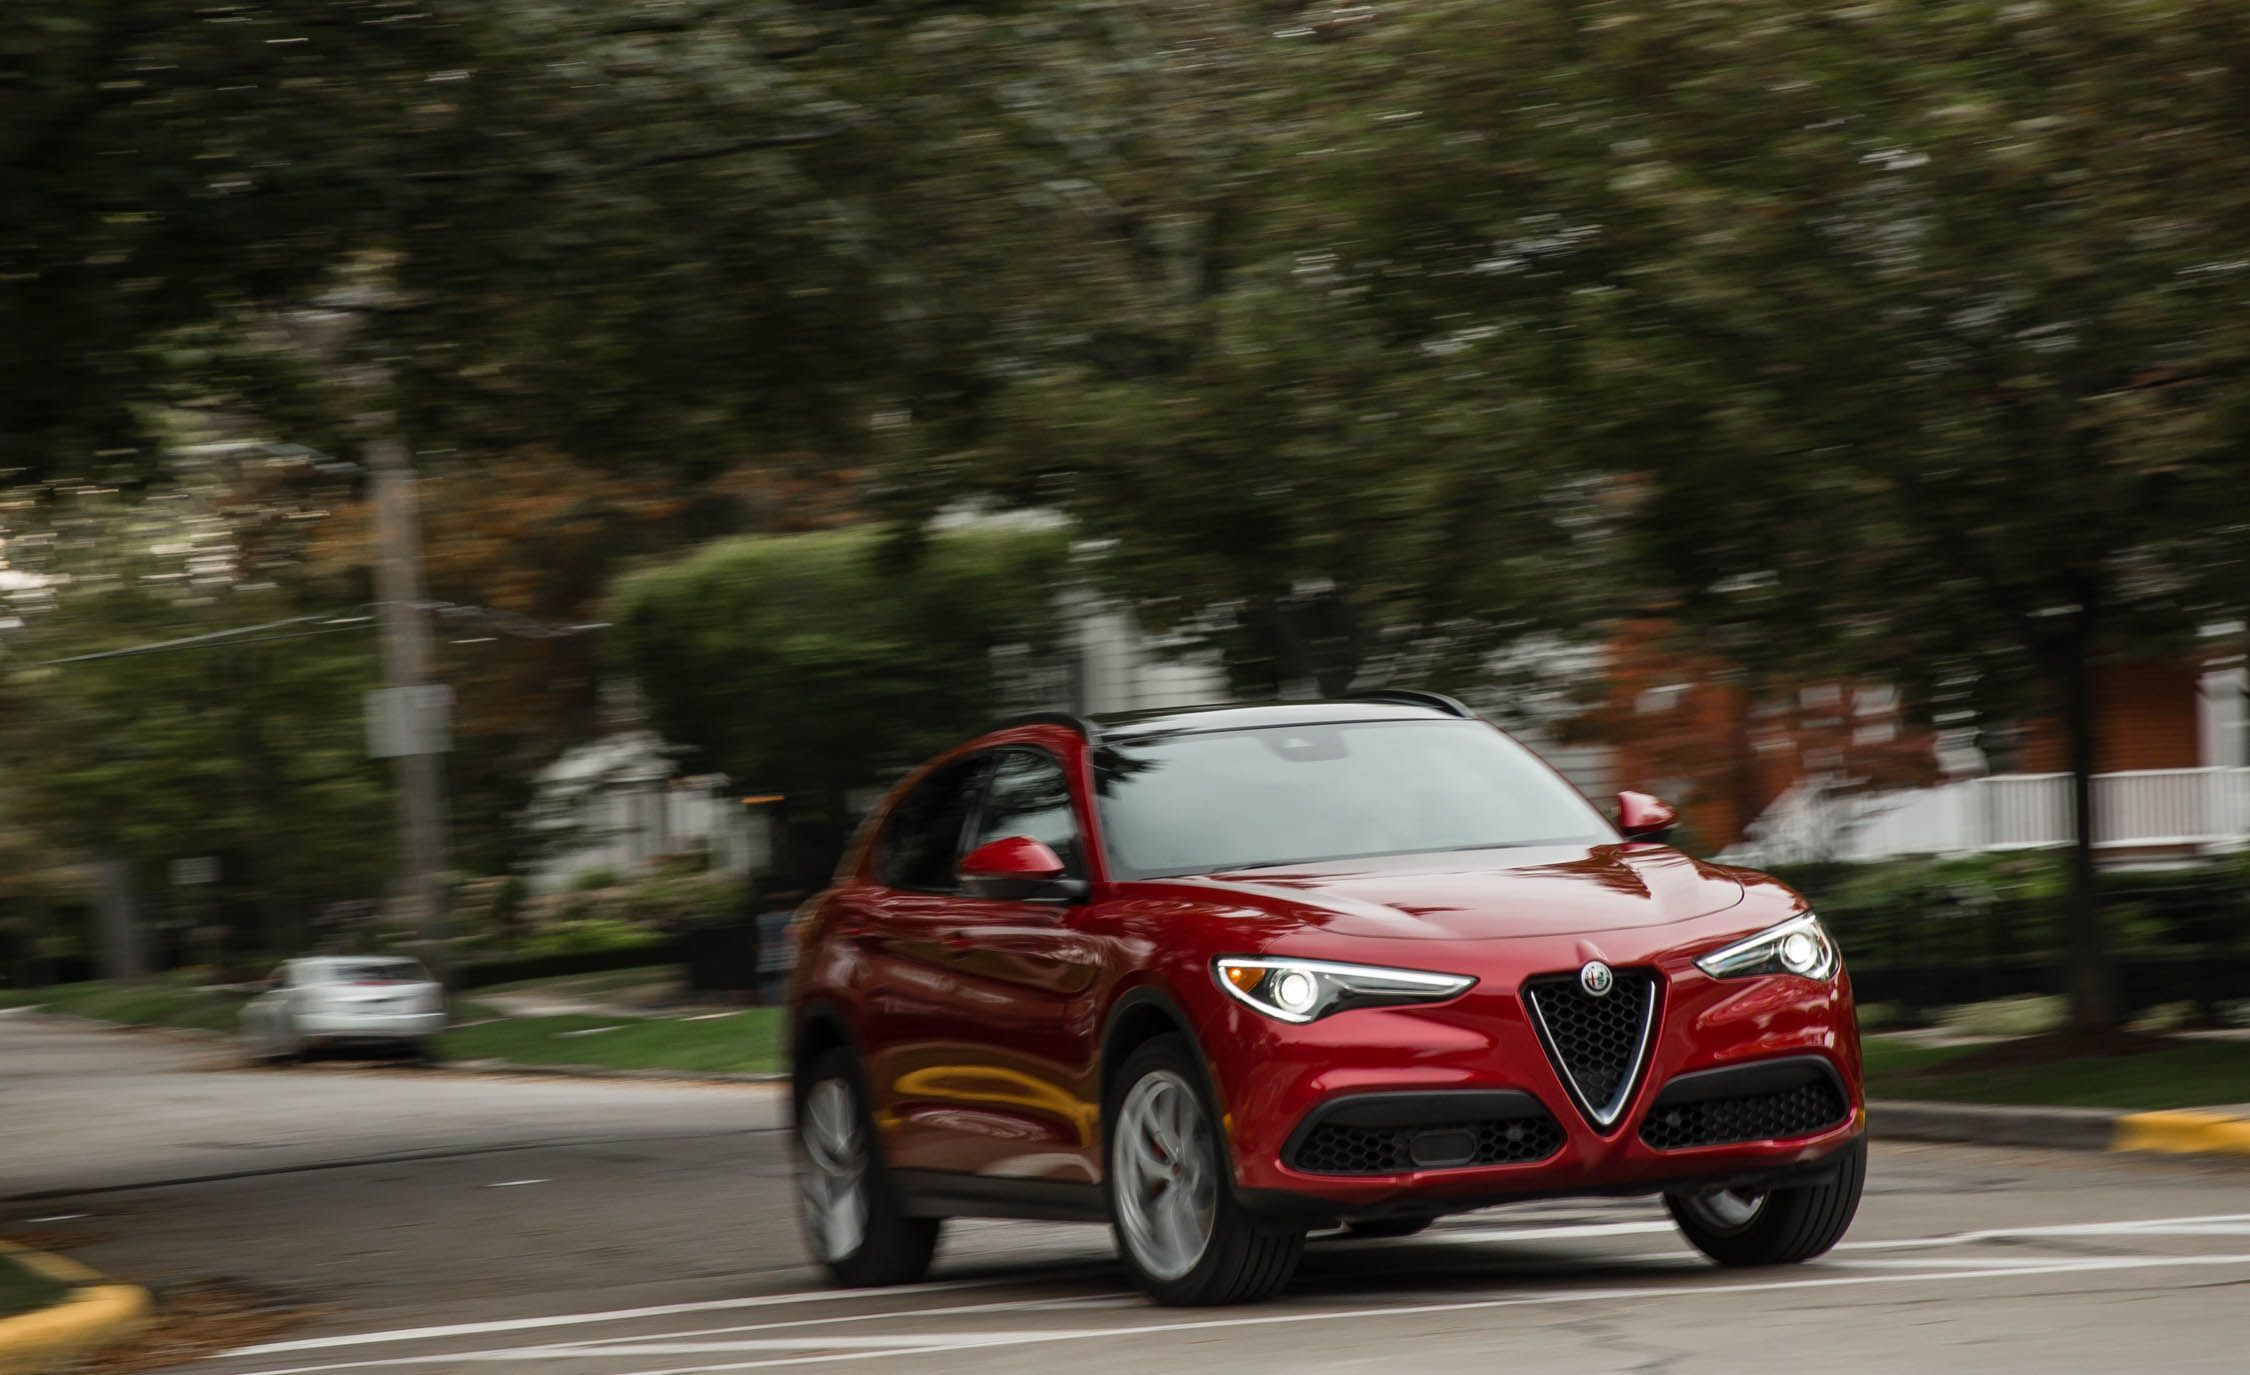 2018 Alfa Romeo Stelvio | Engine and Transmission Review | Car and Driver